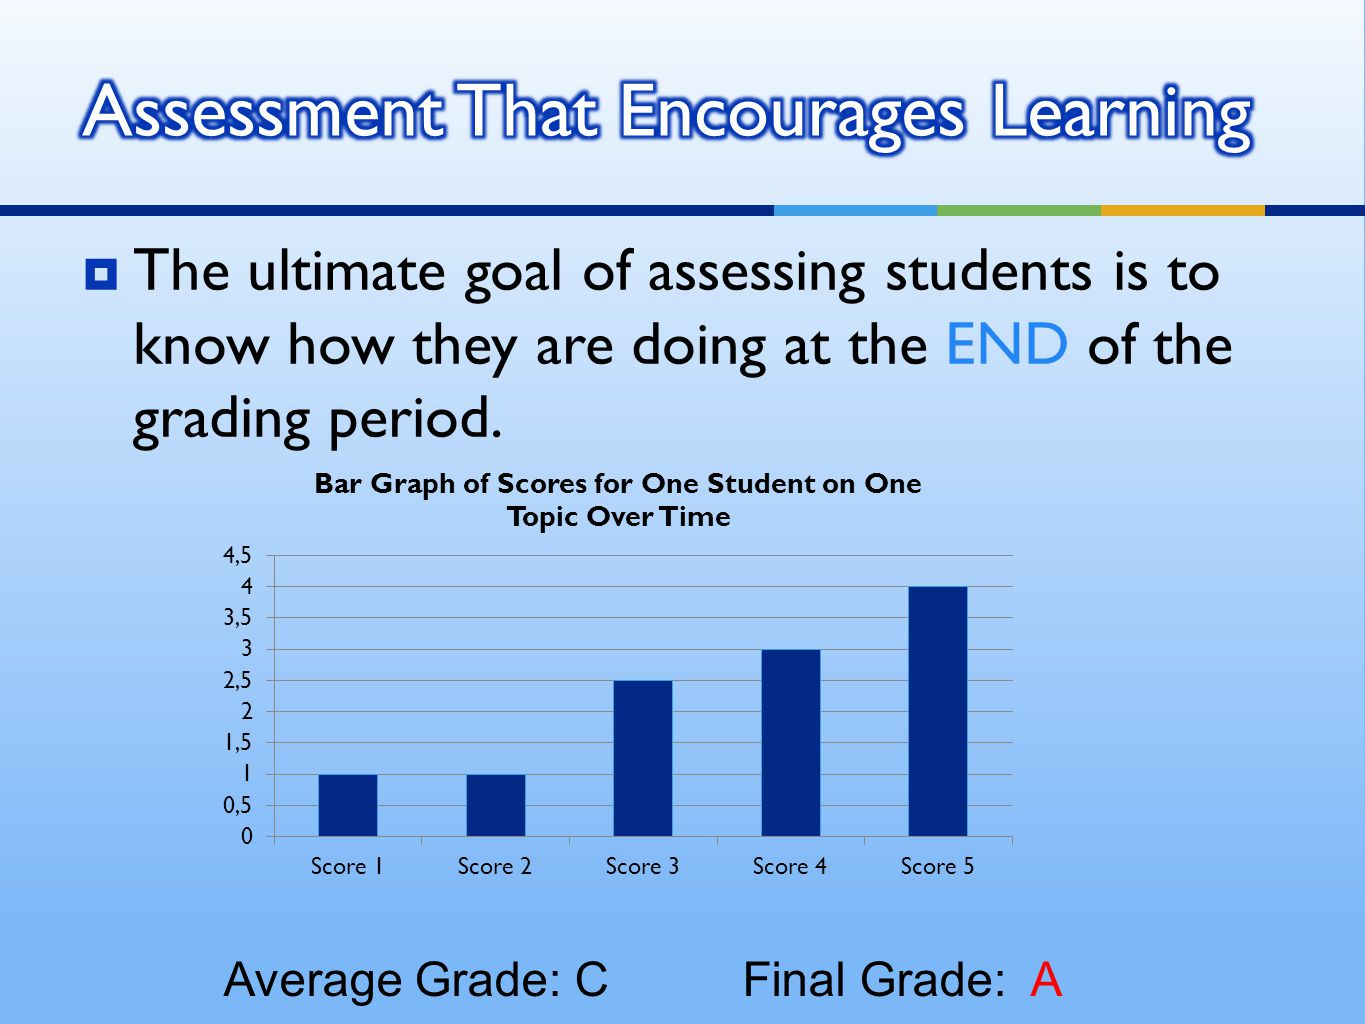  The ultimate goal of assessing students is to know how they are doing at the END of the grading period.